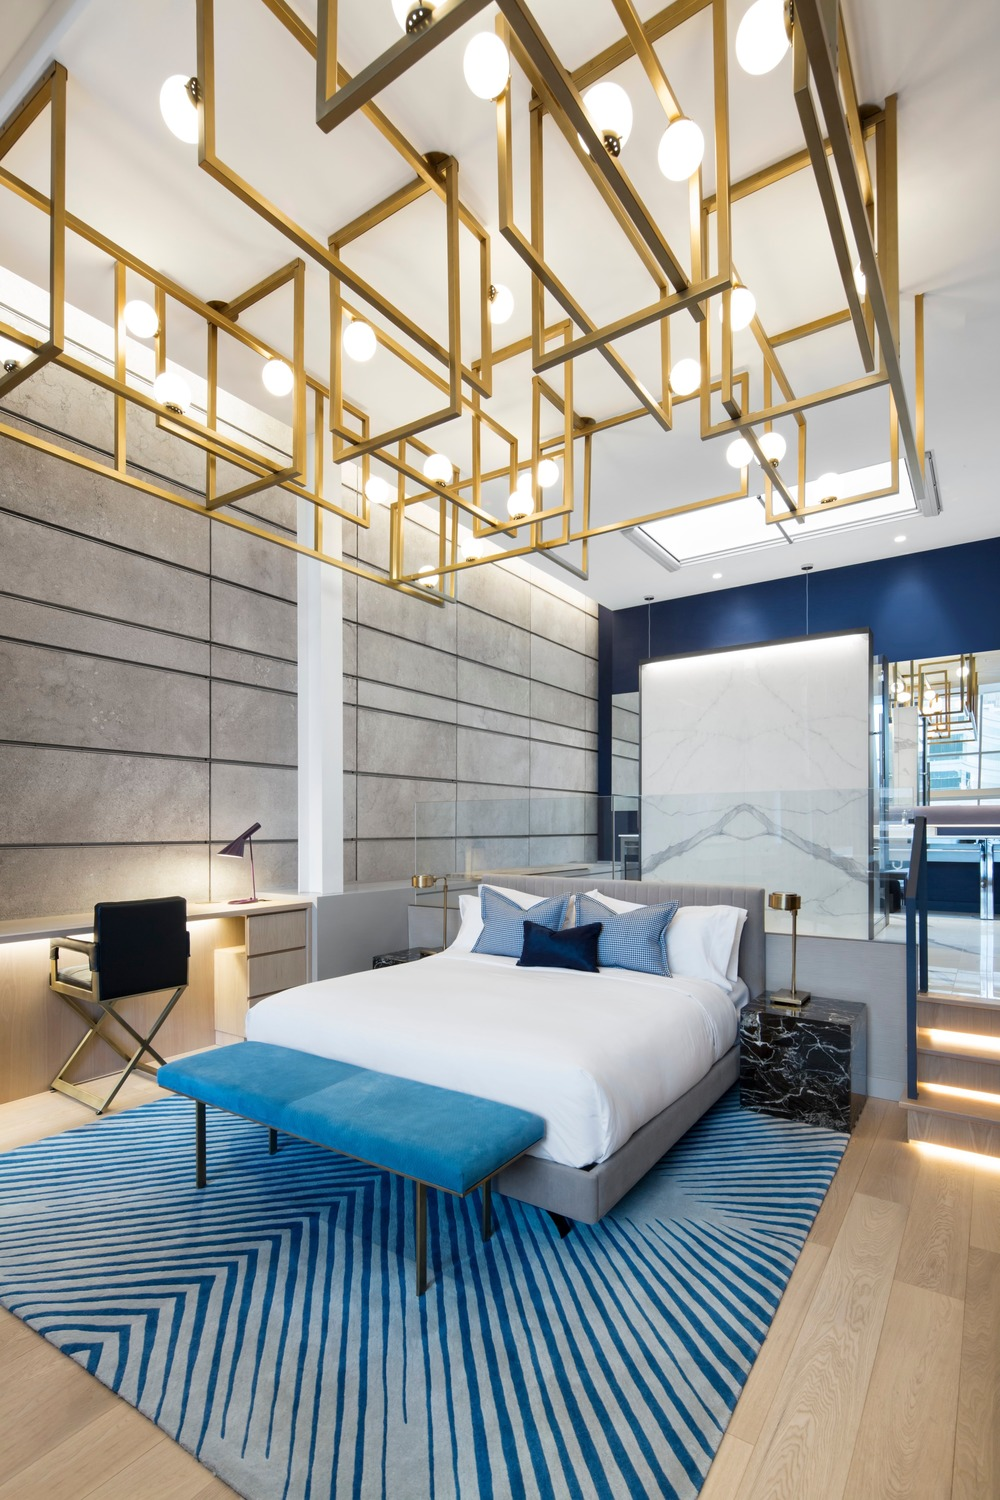 The bed in the W hotel